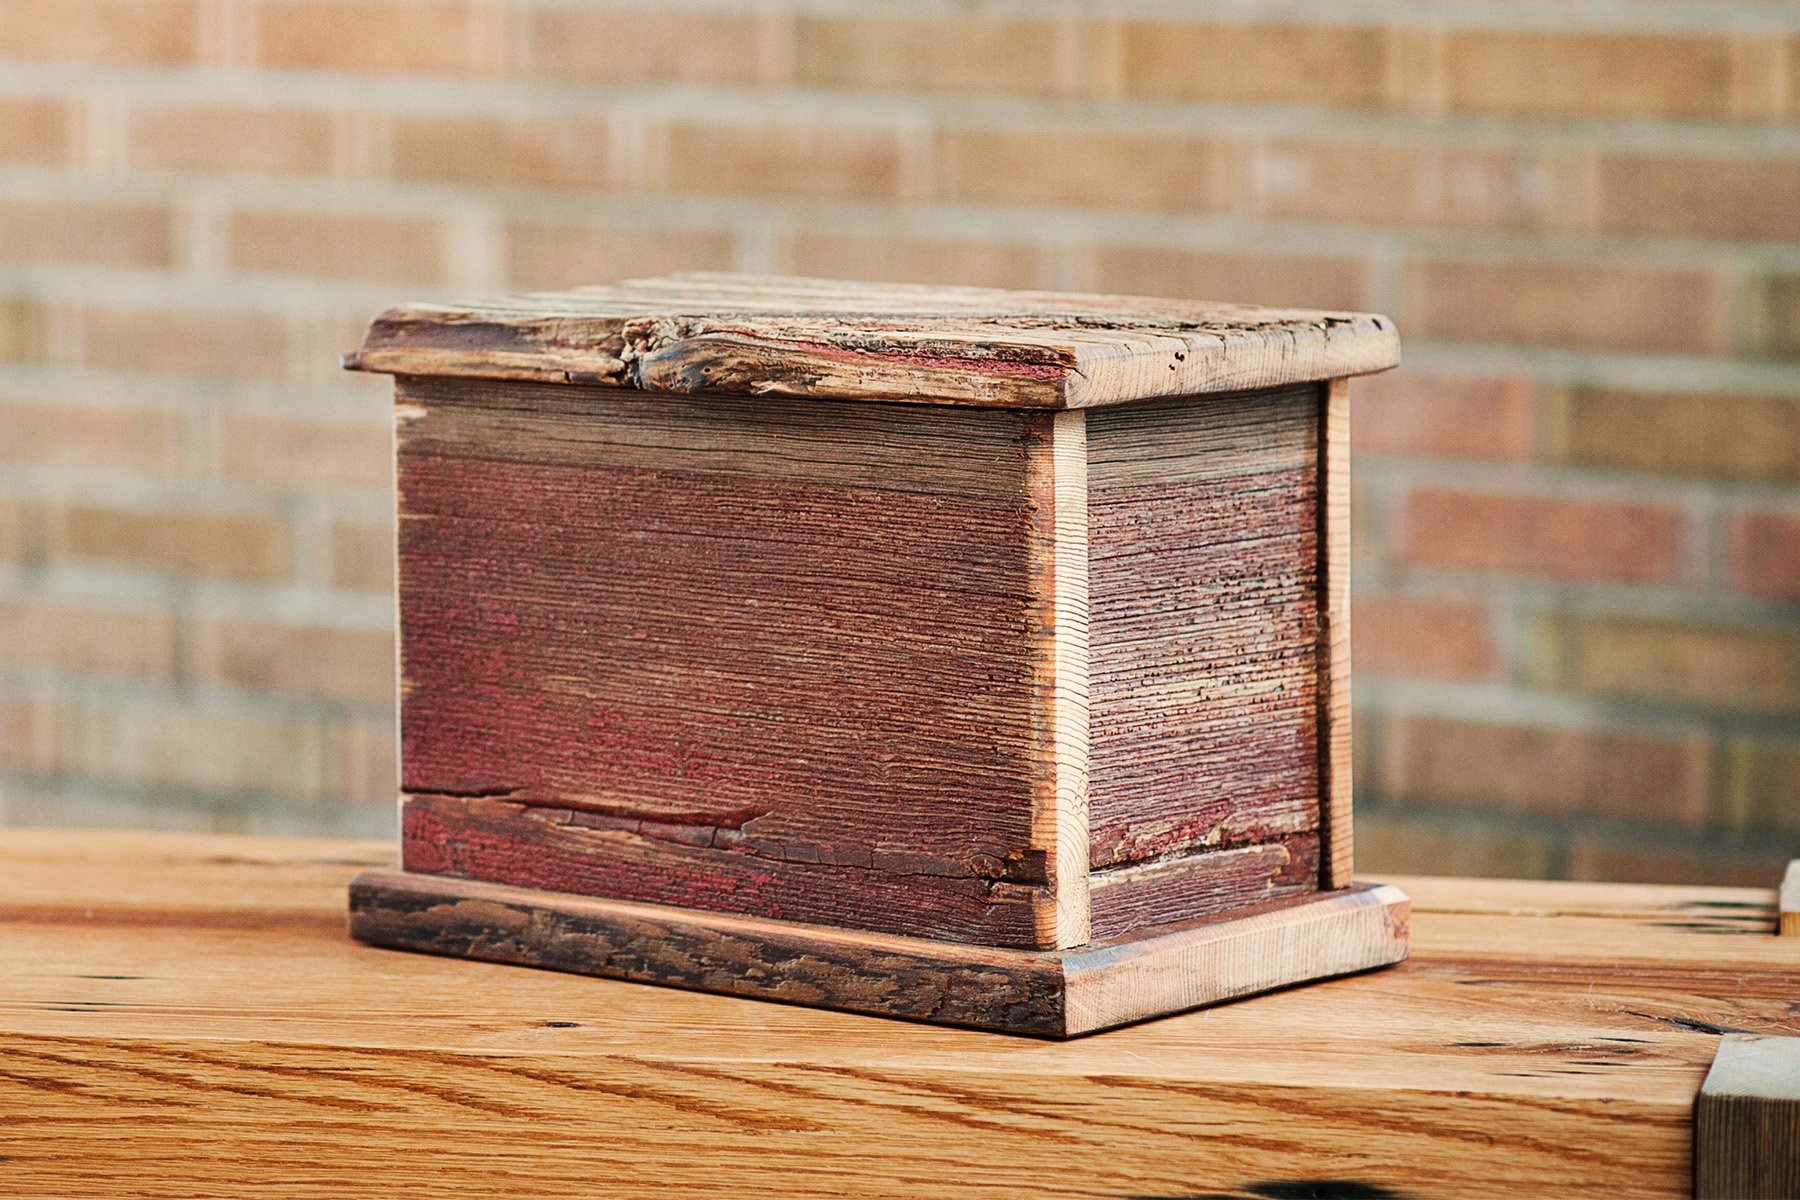 Barnwood Funeral Urn in Pine - Handcrafted in Wisconsin, USA From Vintage Barn Wood - Cremation Urn For Human Ashes & Cremated Remains - Burial Urn - Decorative Urn - Wood Urn by Northwoods Casket Company (Image #4)